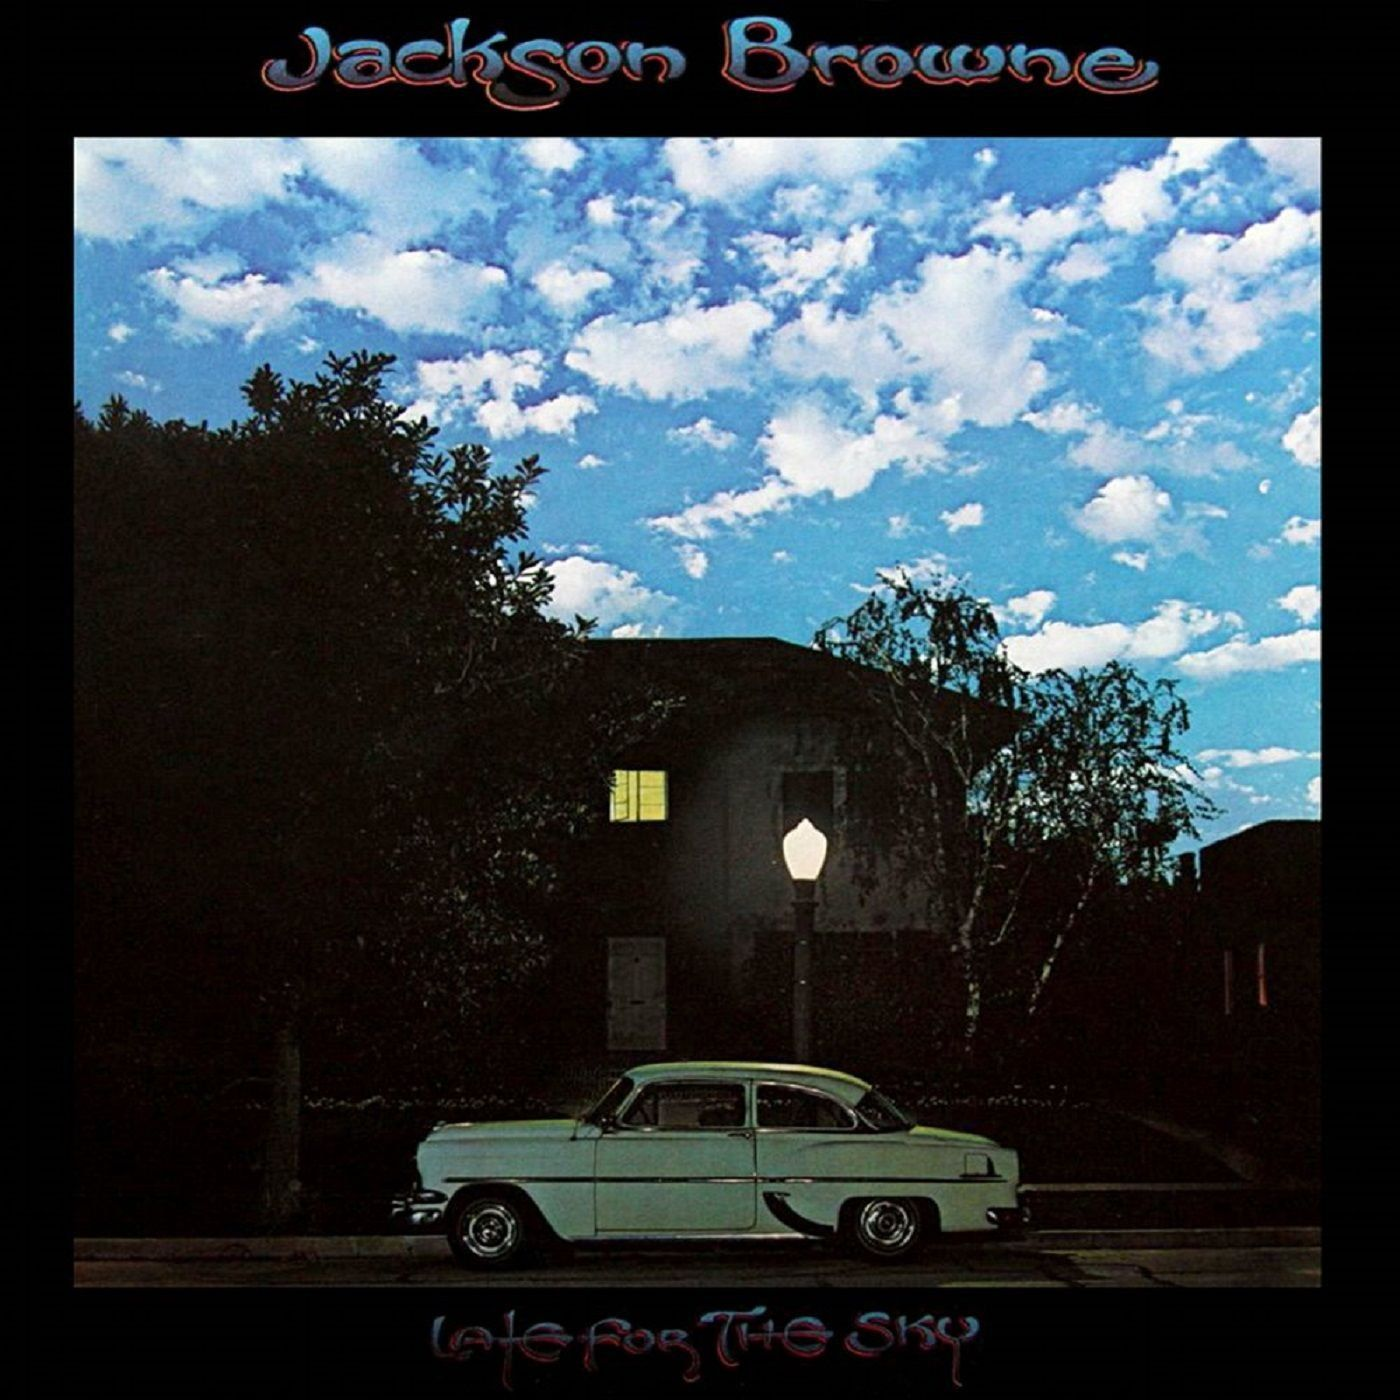 Jackson Browne Late For The Sky 180 Gram Vinyl Amazon Com Music Giftryapp Jackson Browne Vinyl Great Albums